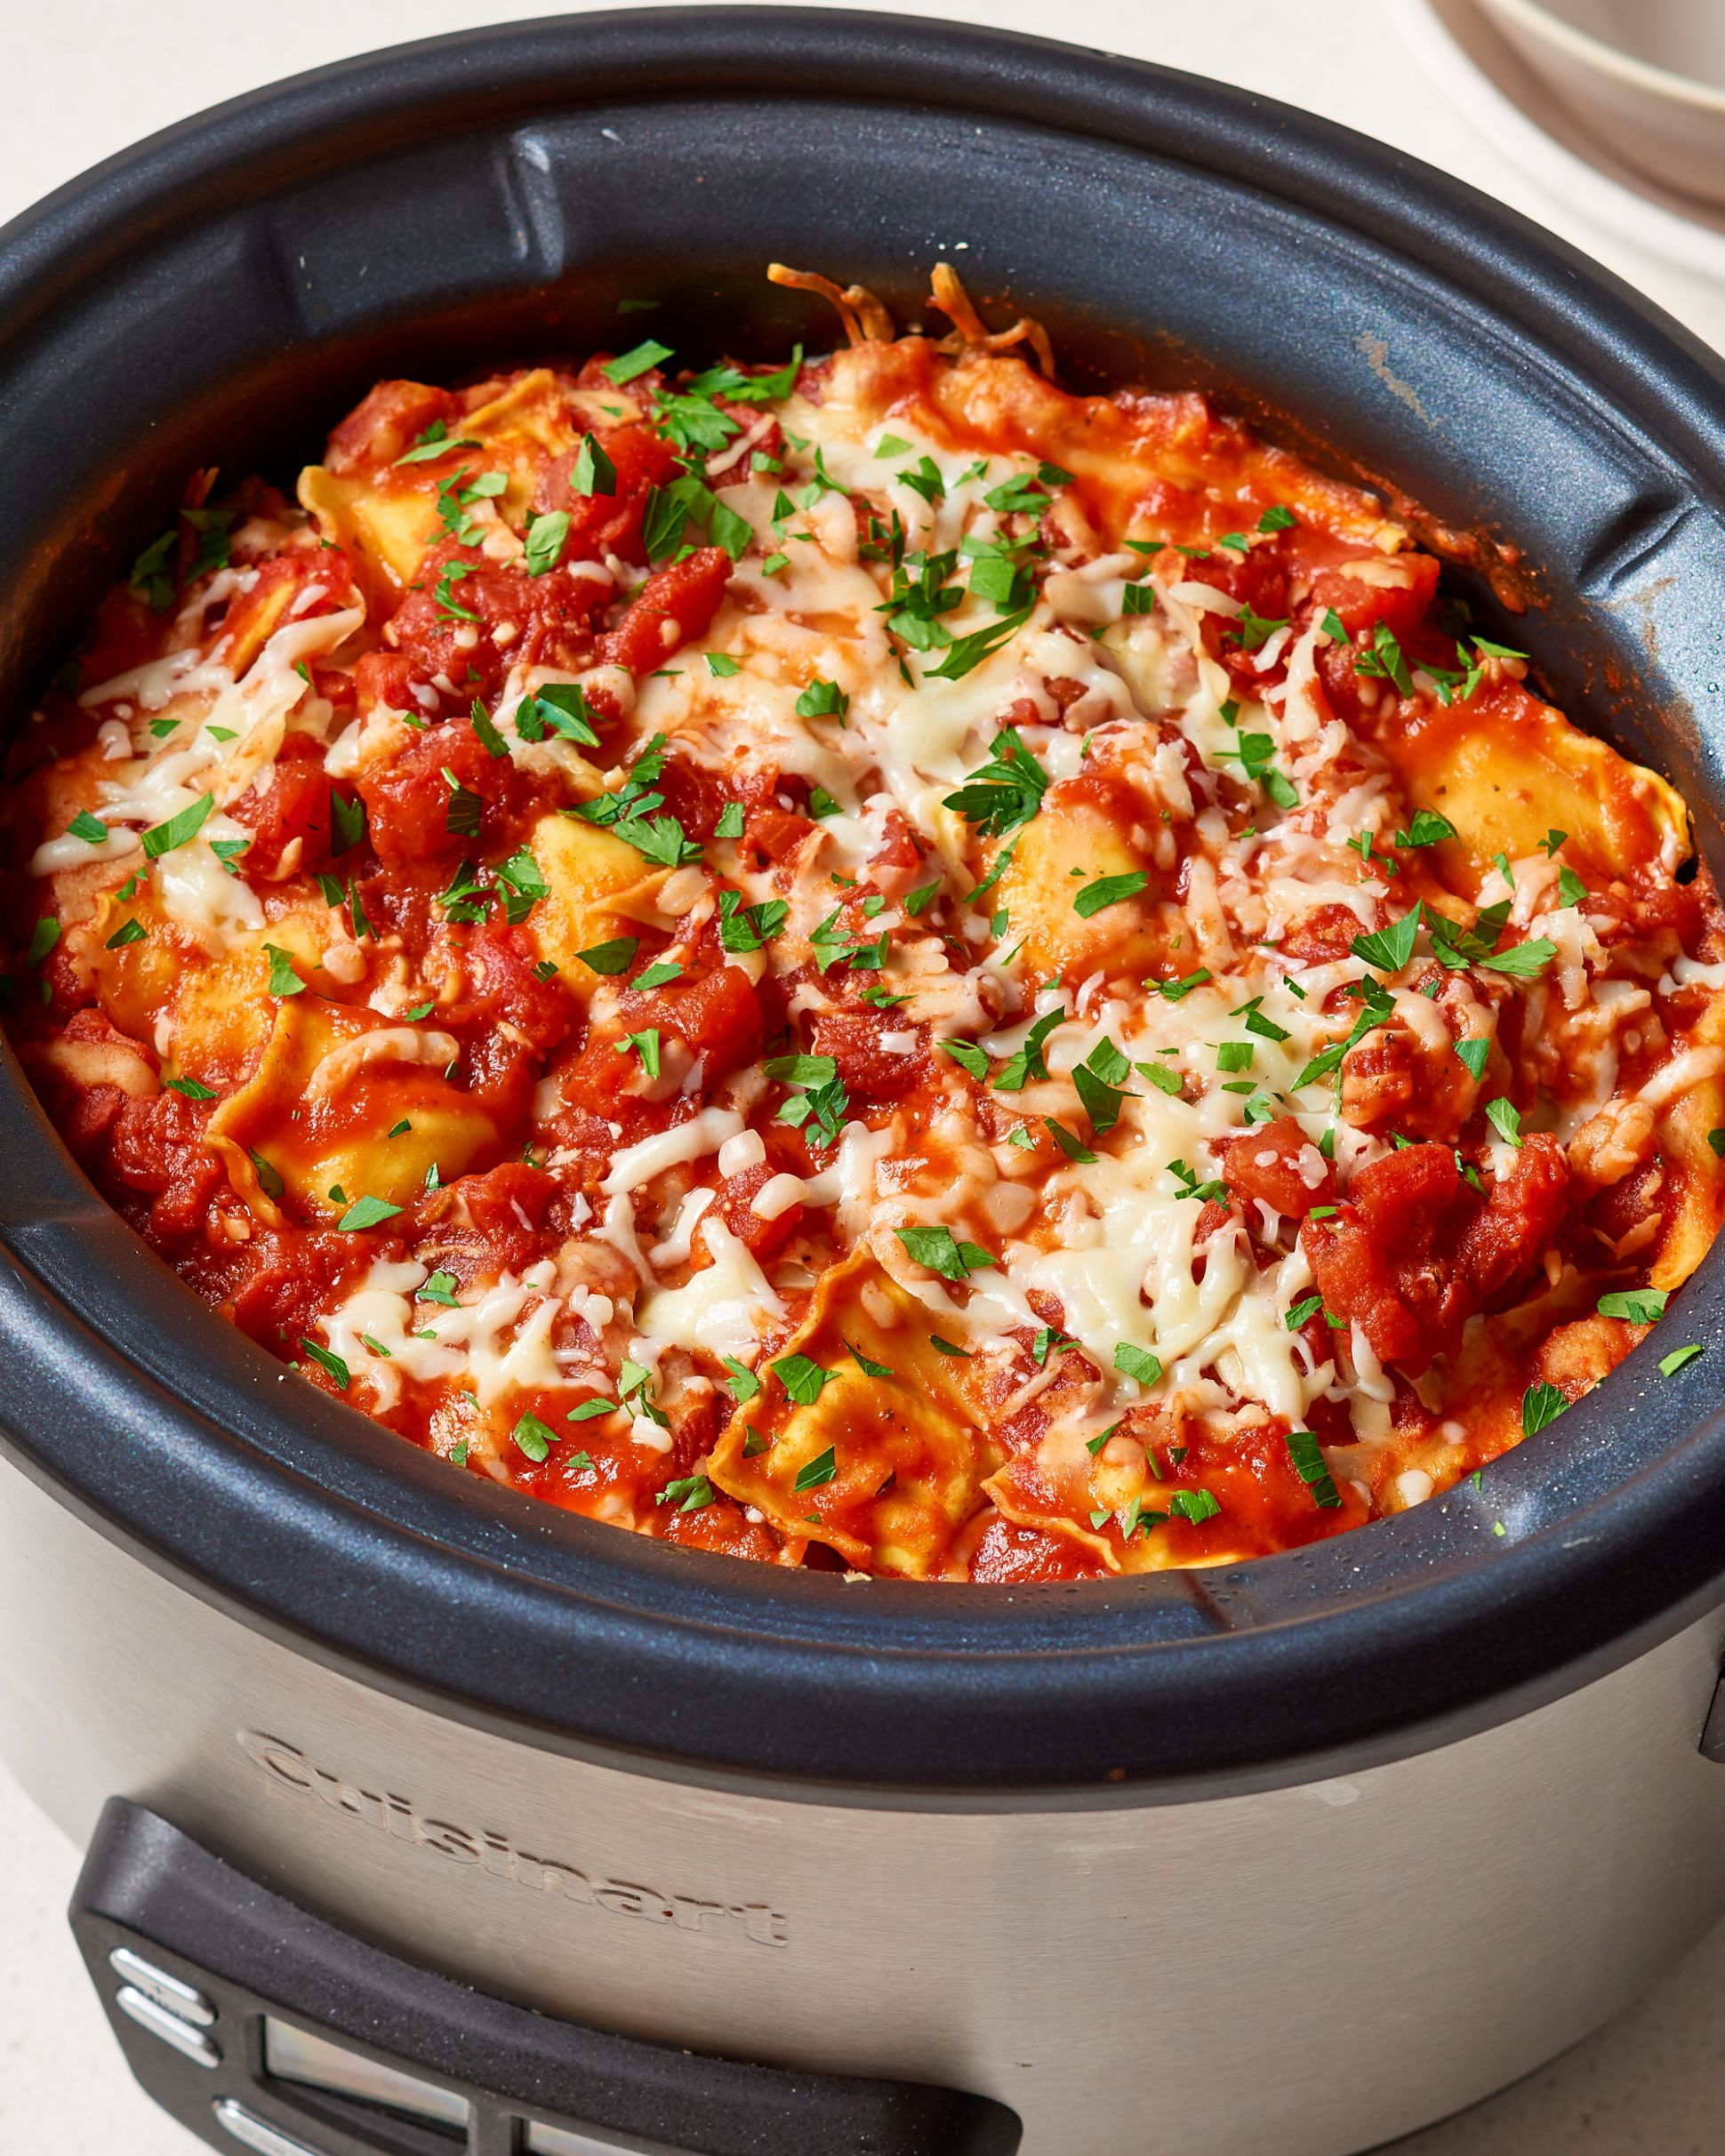 10 Vegetarian Meals from the Slow Cooker | Kitchn - Vegetarian Recipes In Slow Cooker